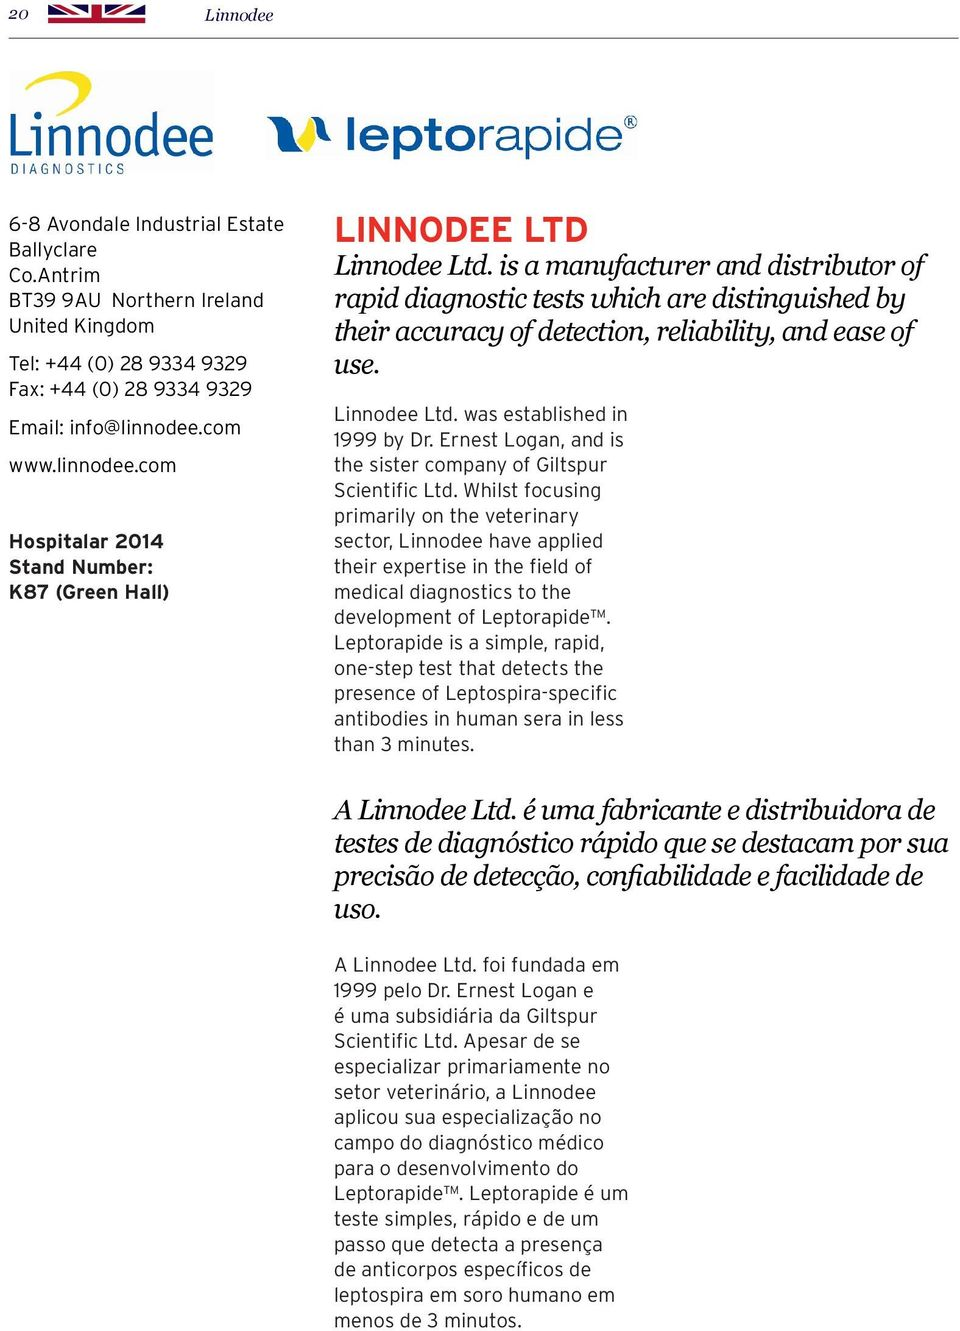 is a manufacturer and distributor of rapid diagnostic tests which are distinguished by their accuracy of detection, reliability, and ease of use. Linnodee Ltd. was established in 1999 by Dr.